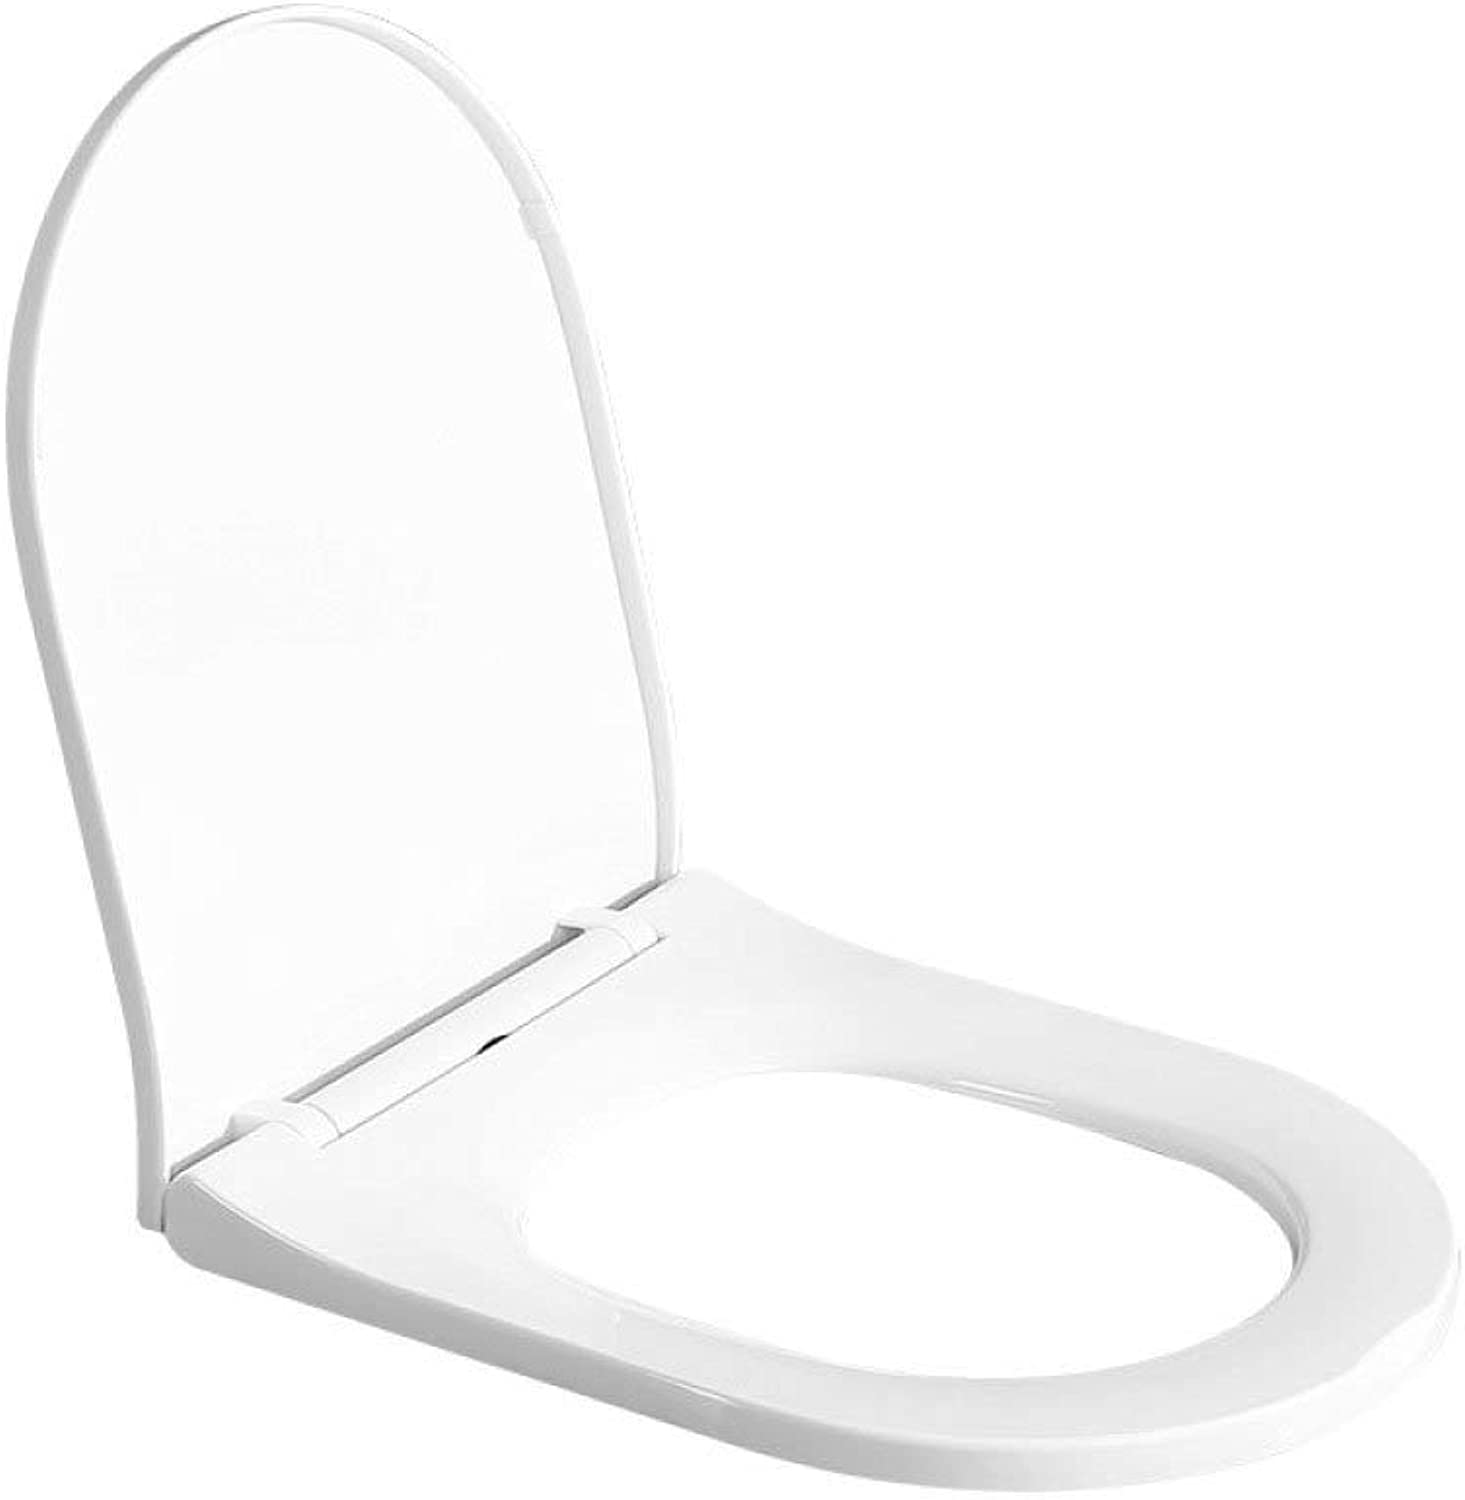 Weiwei Toilet Seat One Second Disassembly Top Mounted Thicker Ultra Resistant Toilet Lid For U Toilet,White-44.549.5  40cm